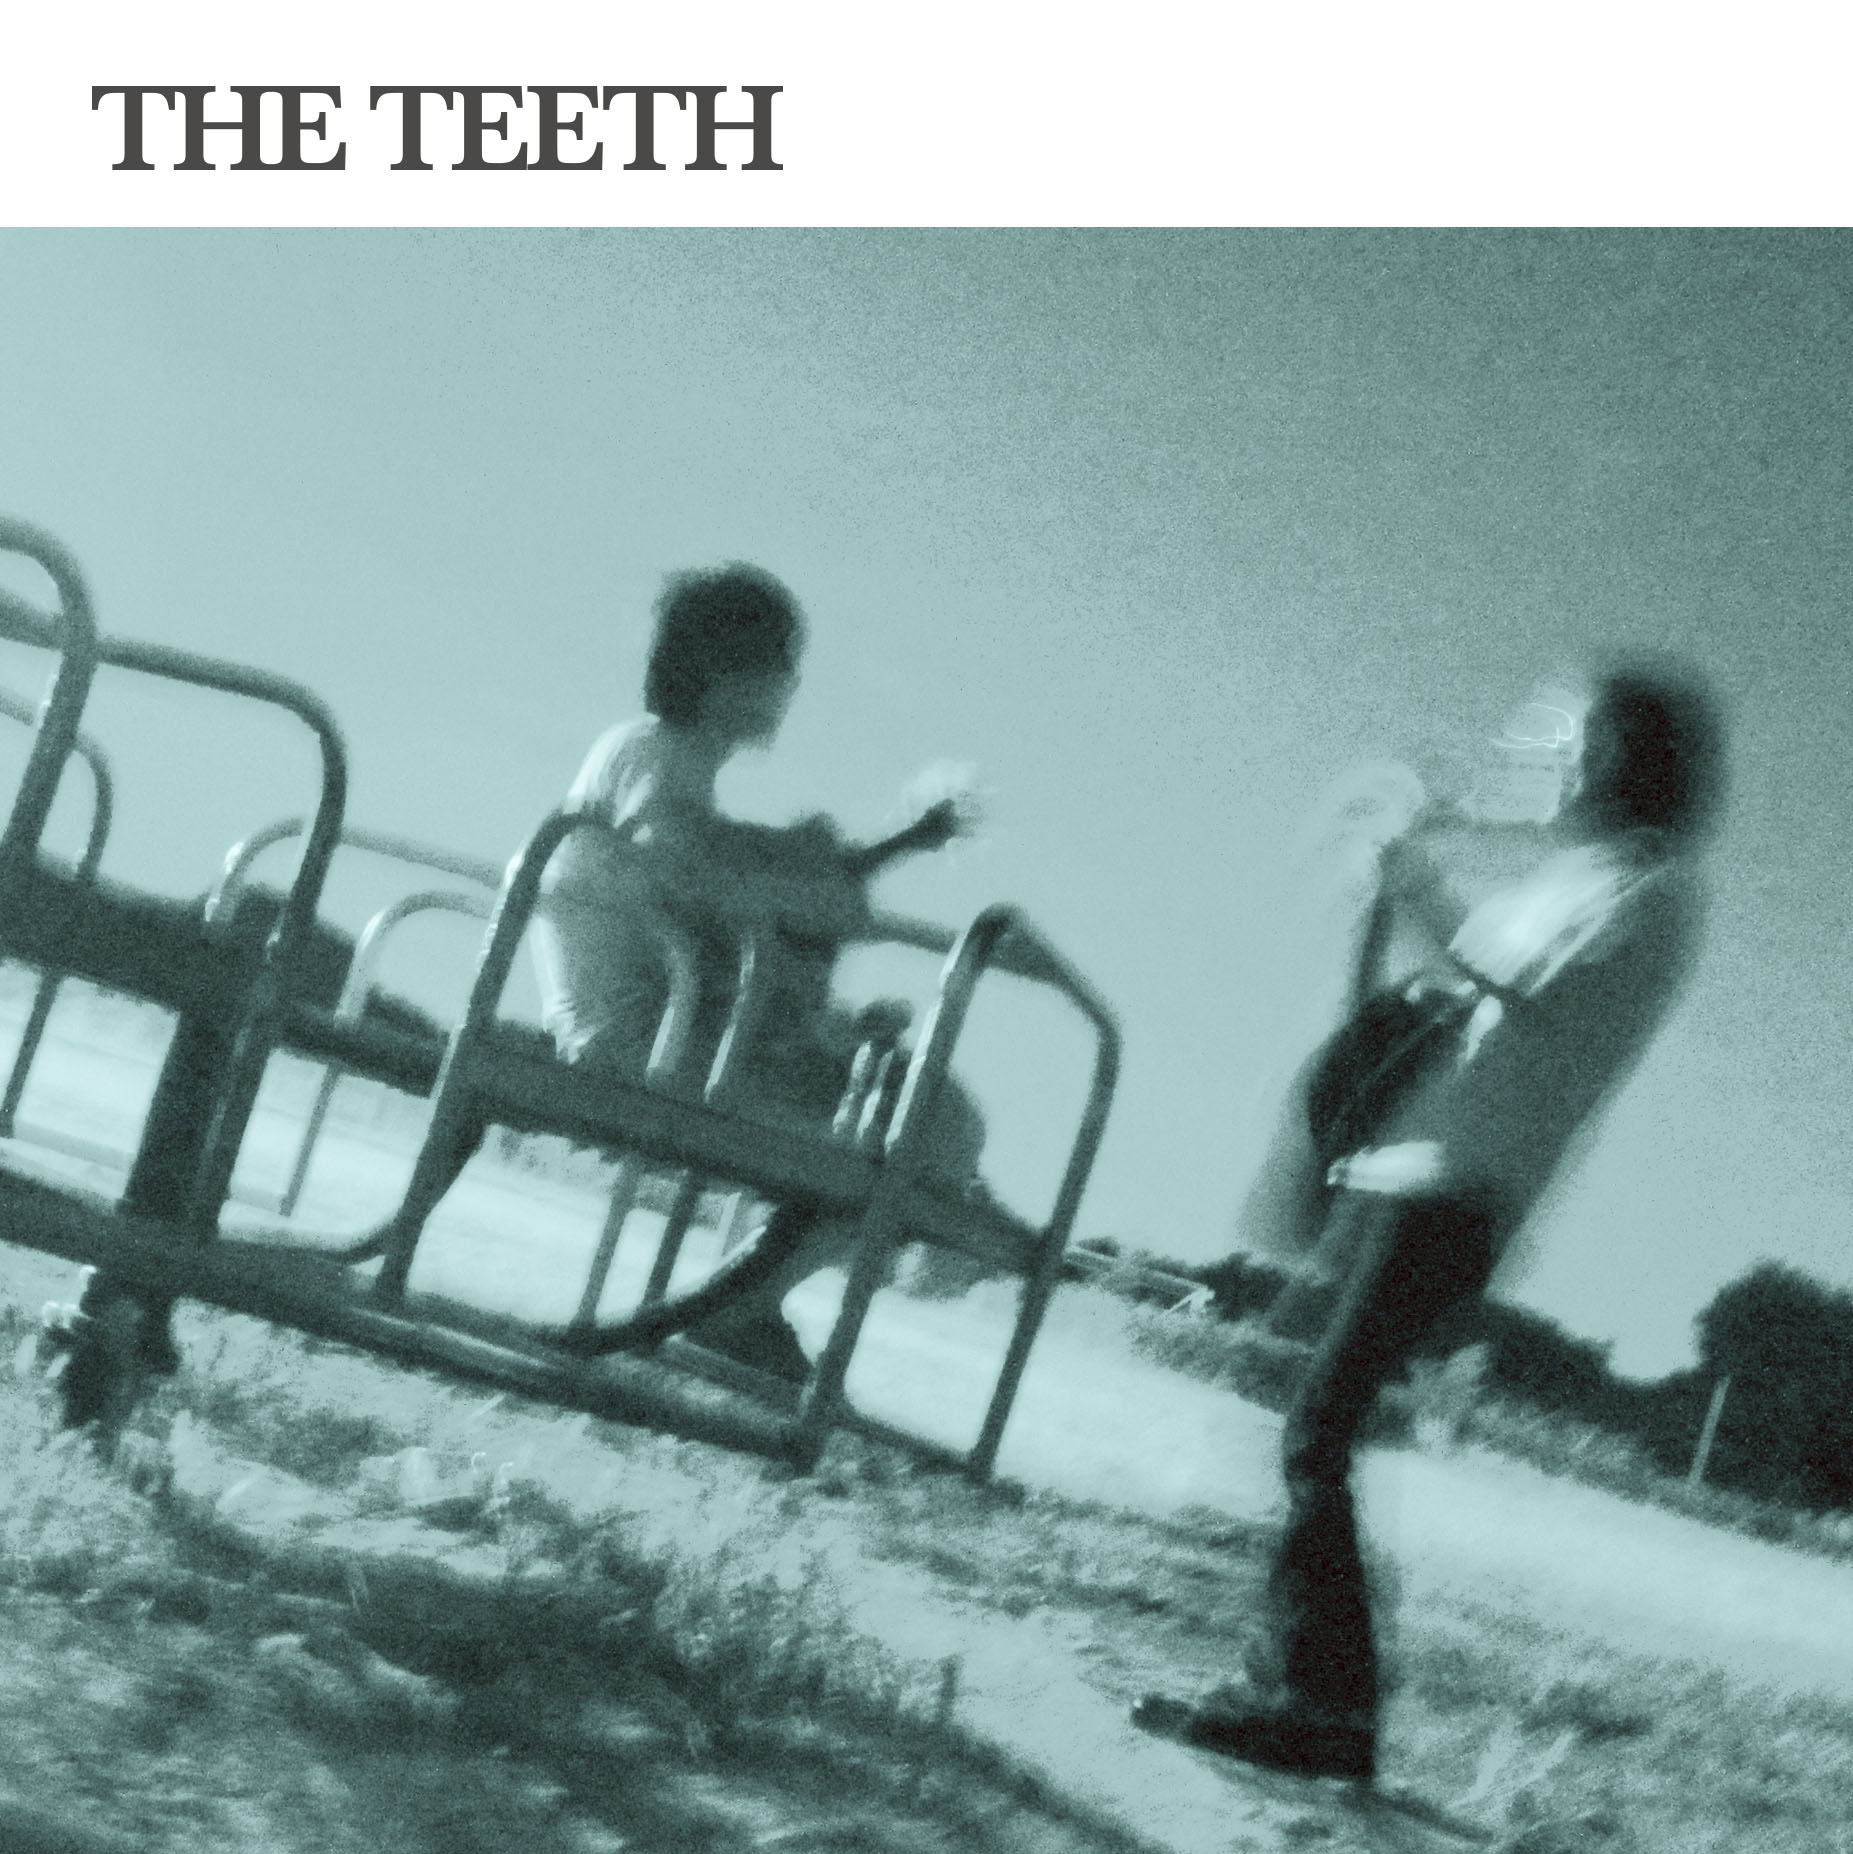 048_THE TEETH